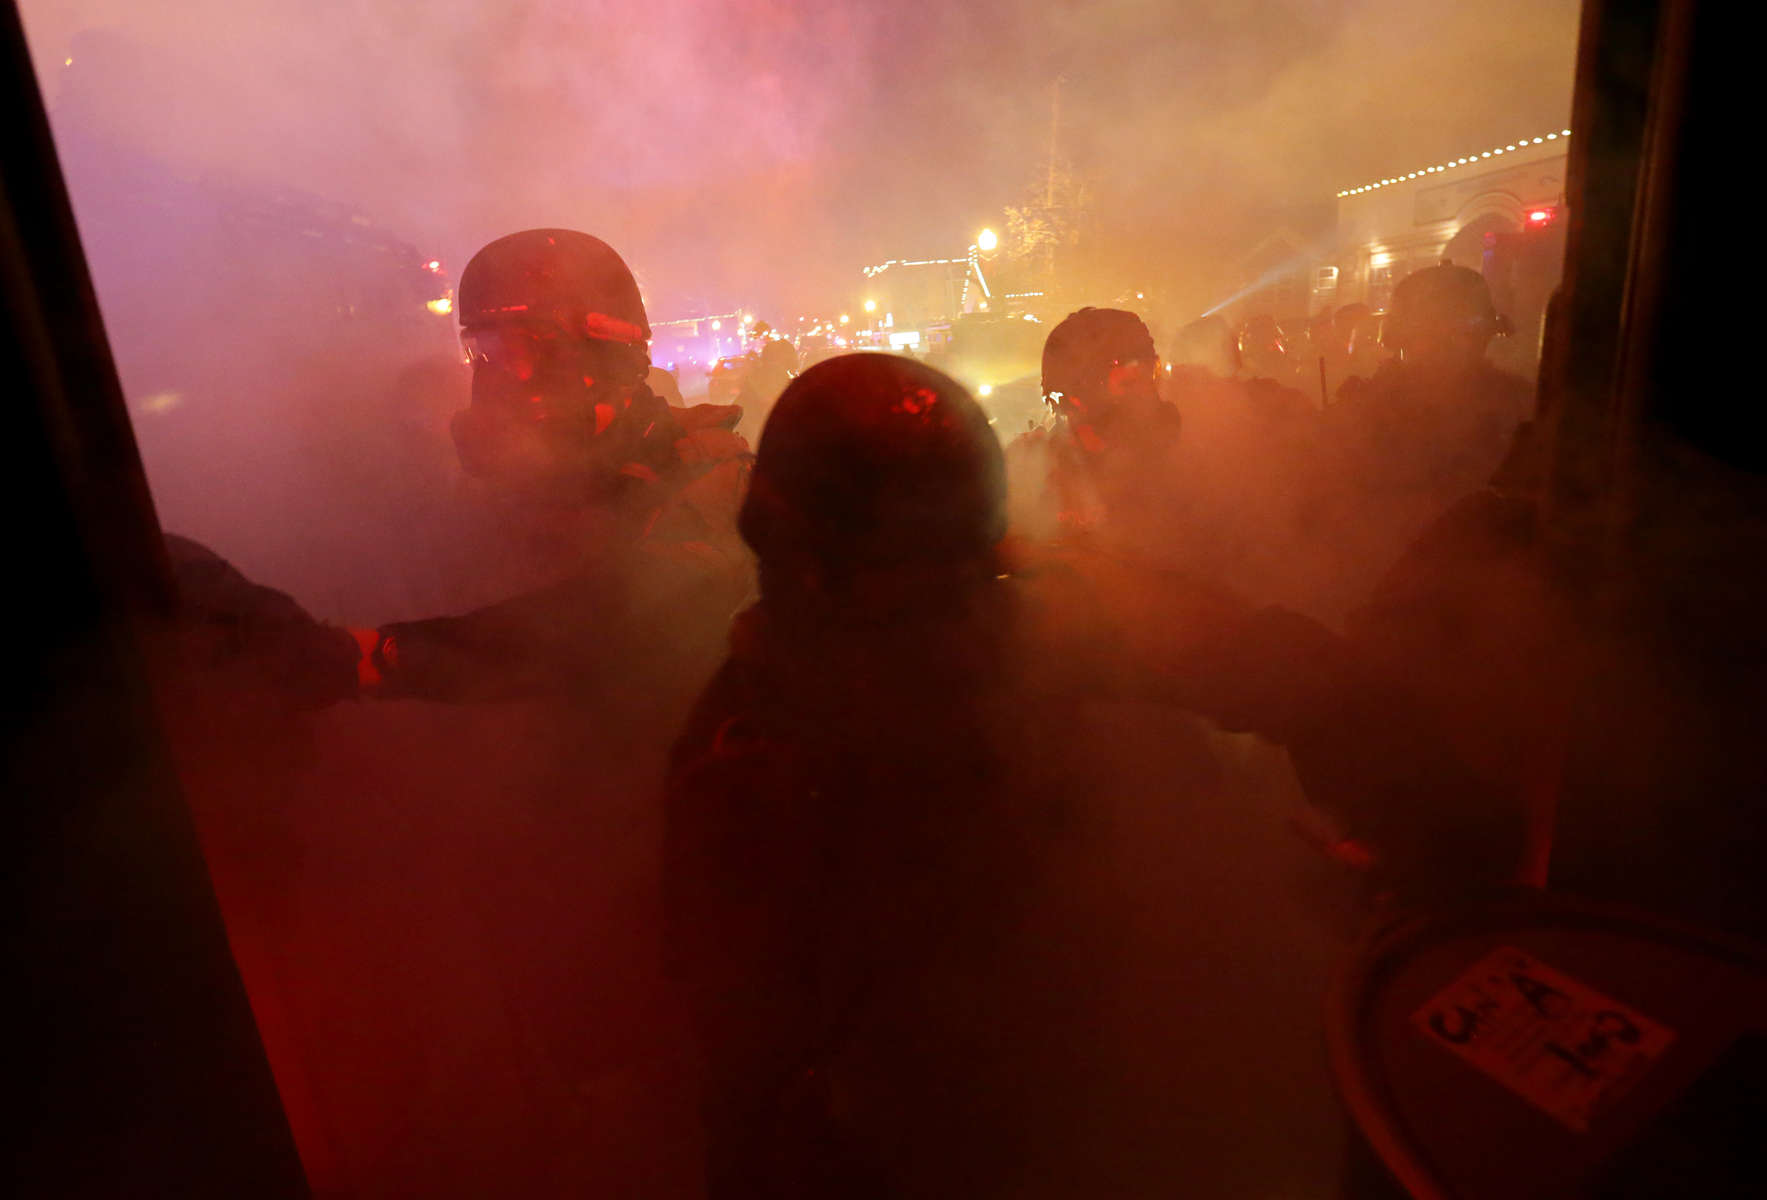 Members of the St. Louis County Police tactical team are engulfed in tear gas as they try to disperse a crowd near the Ferguson police station on S. Florissant Avenue in Ferguson on Monday, Nov. 24, 2014.Photo By David Carson, dcarson@post-dispatch.com